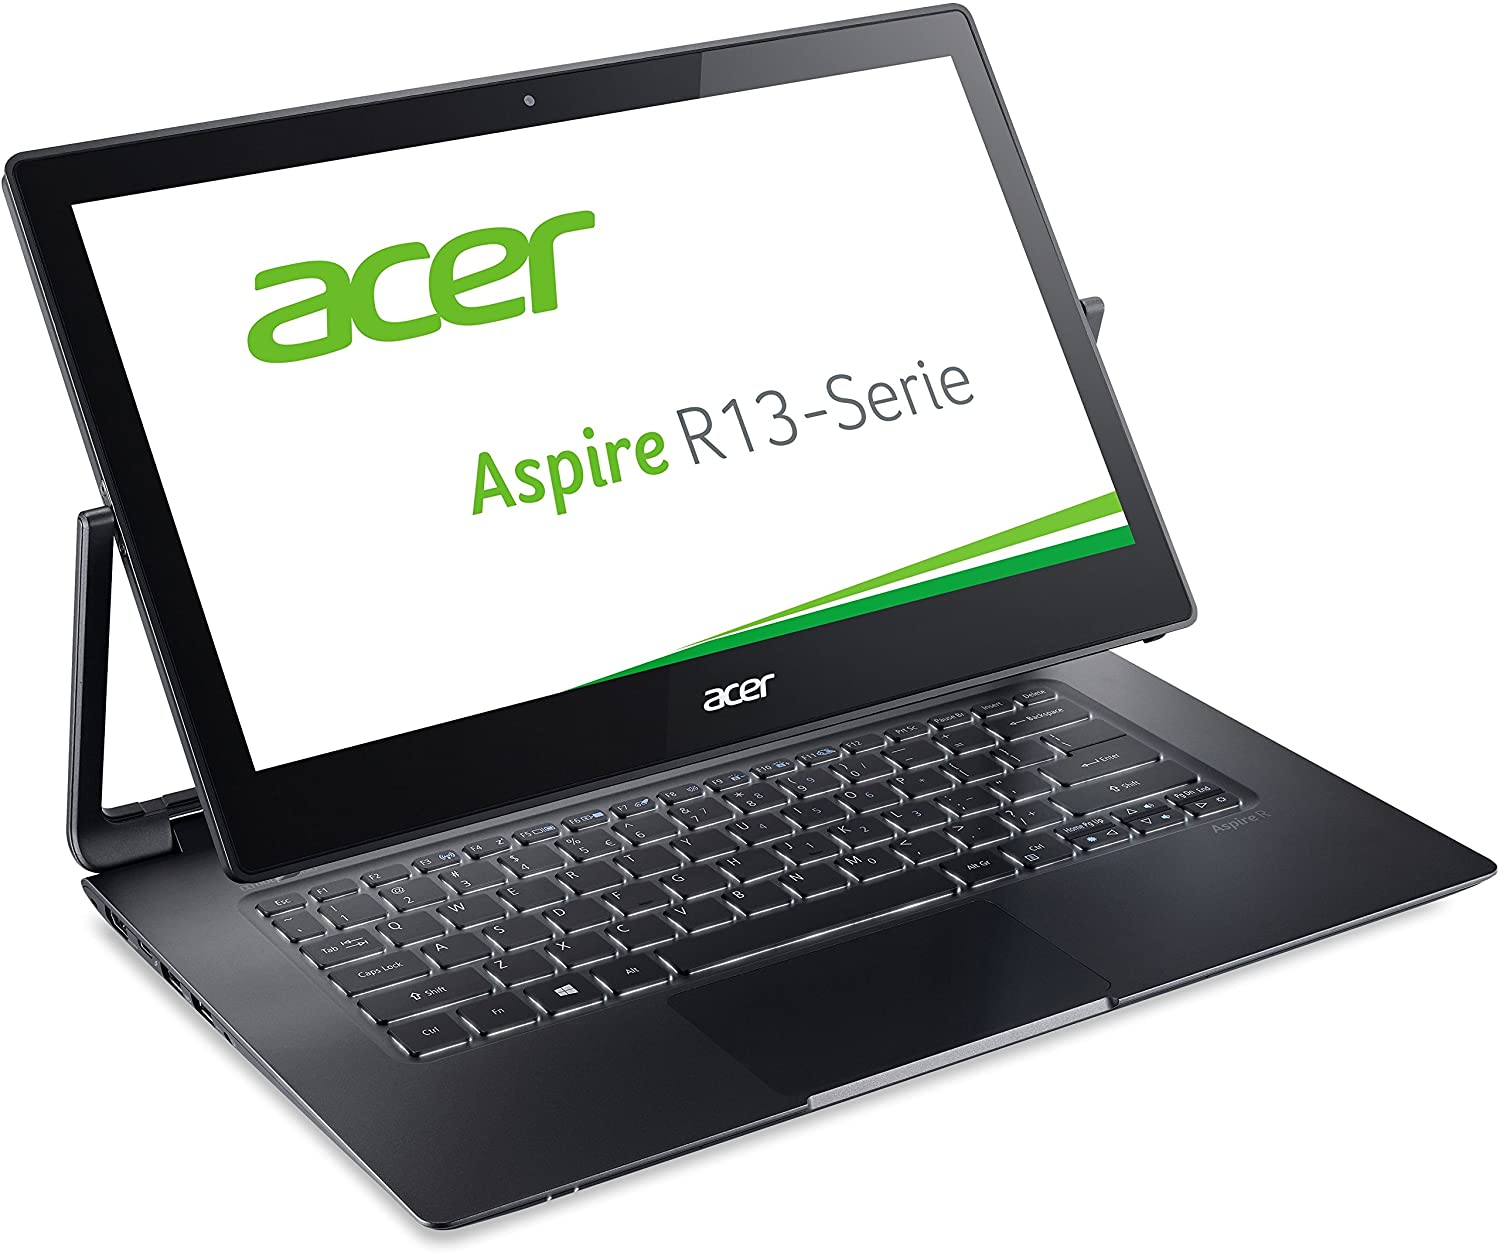 Acer Aspire Notebook amazon